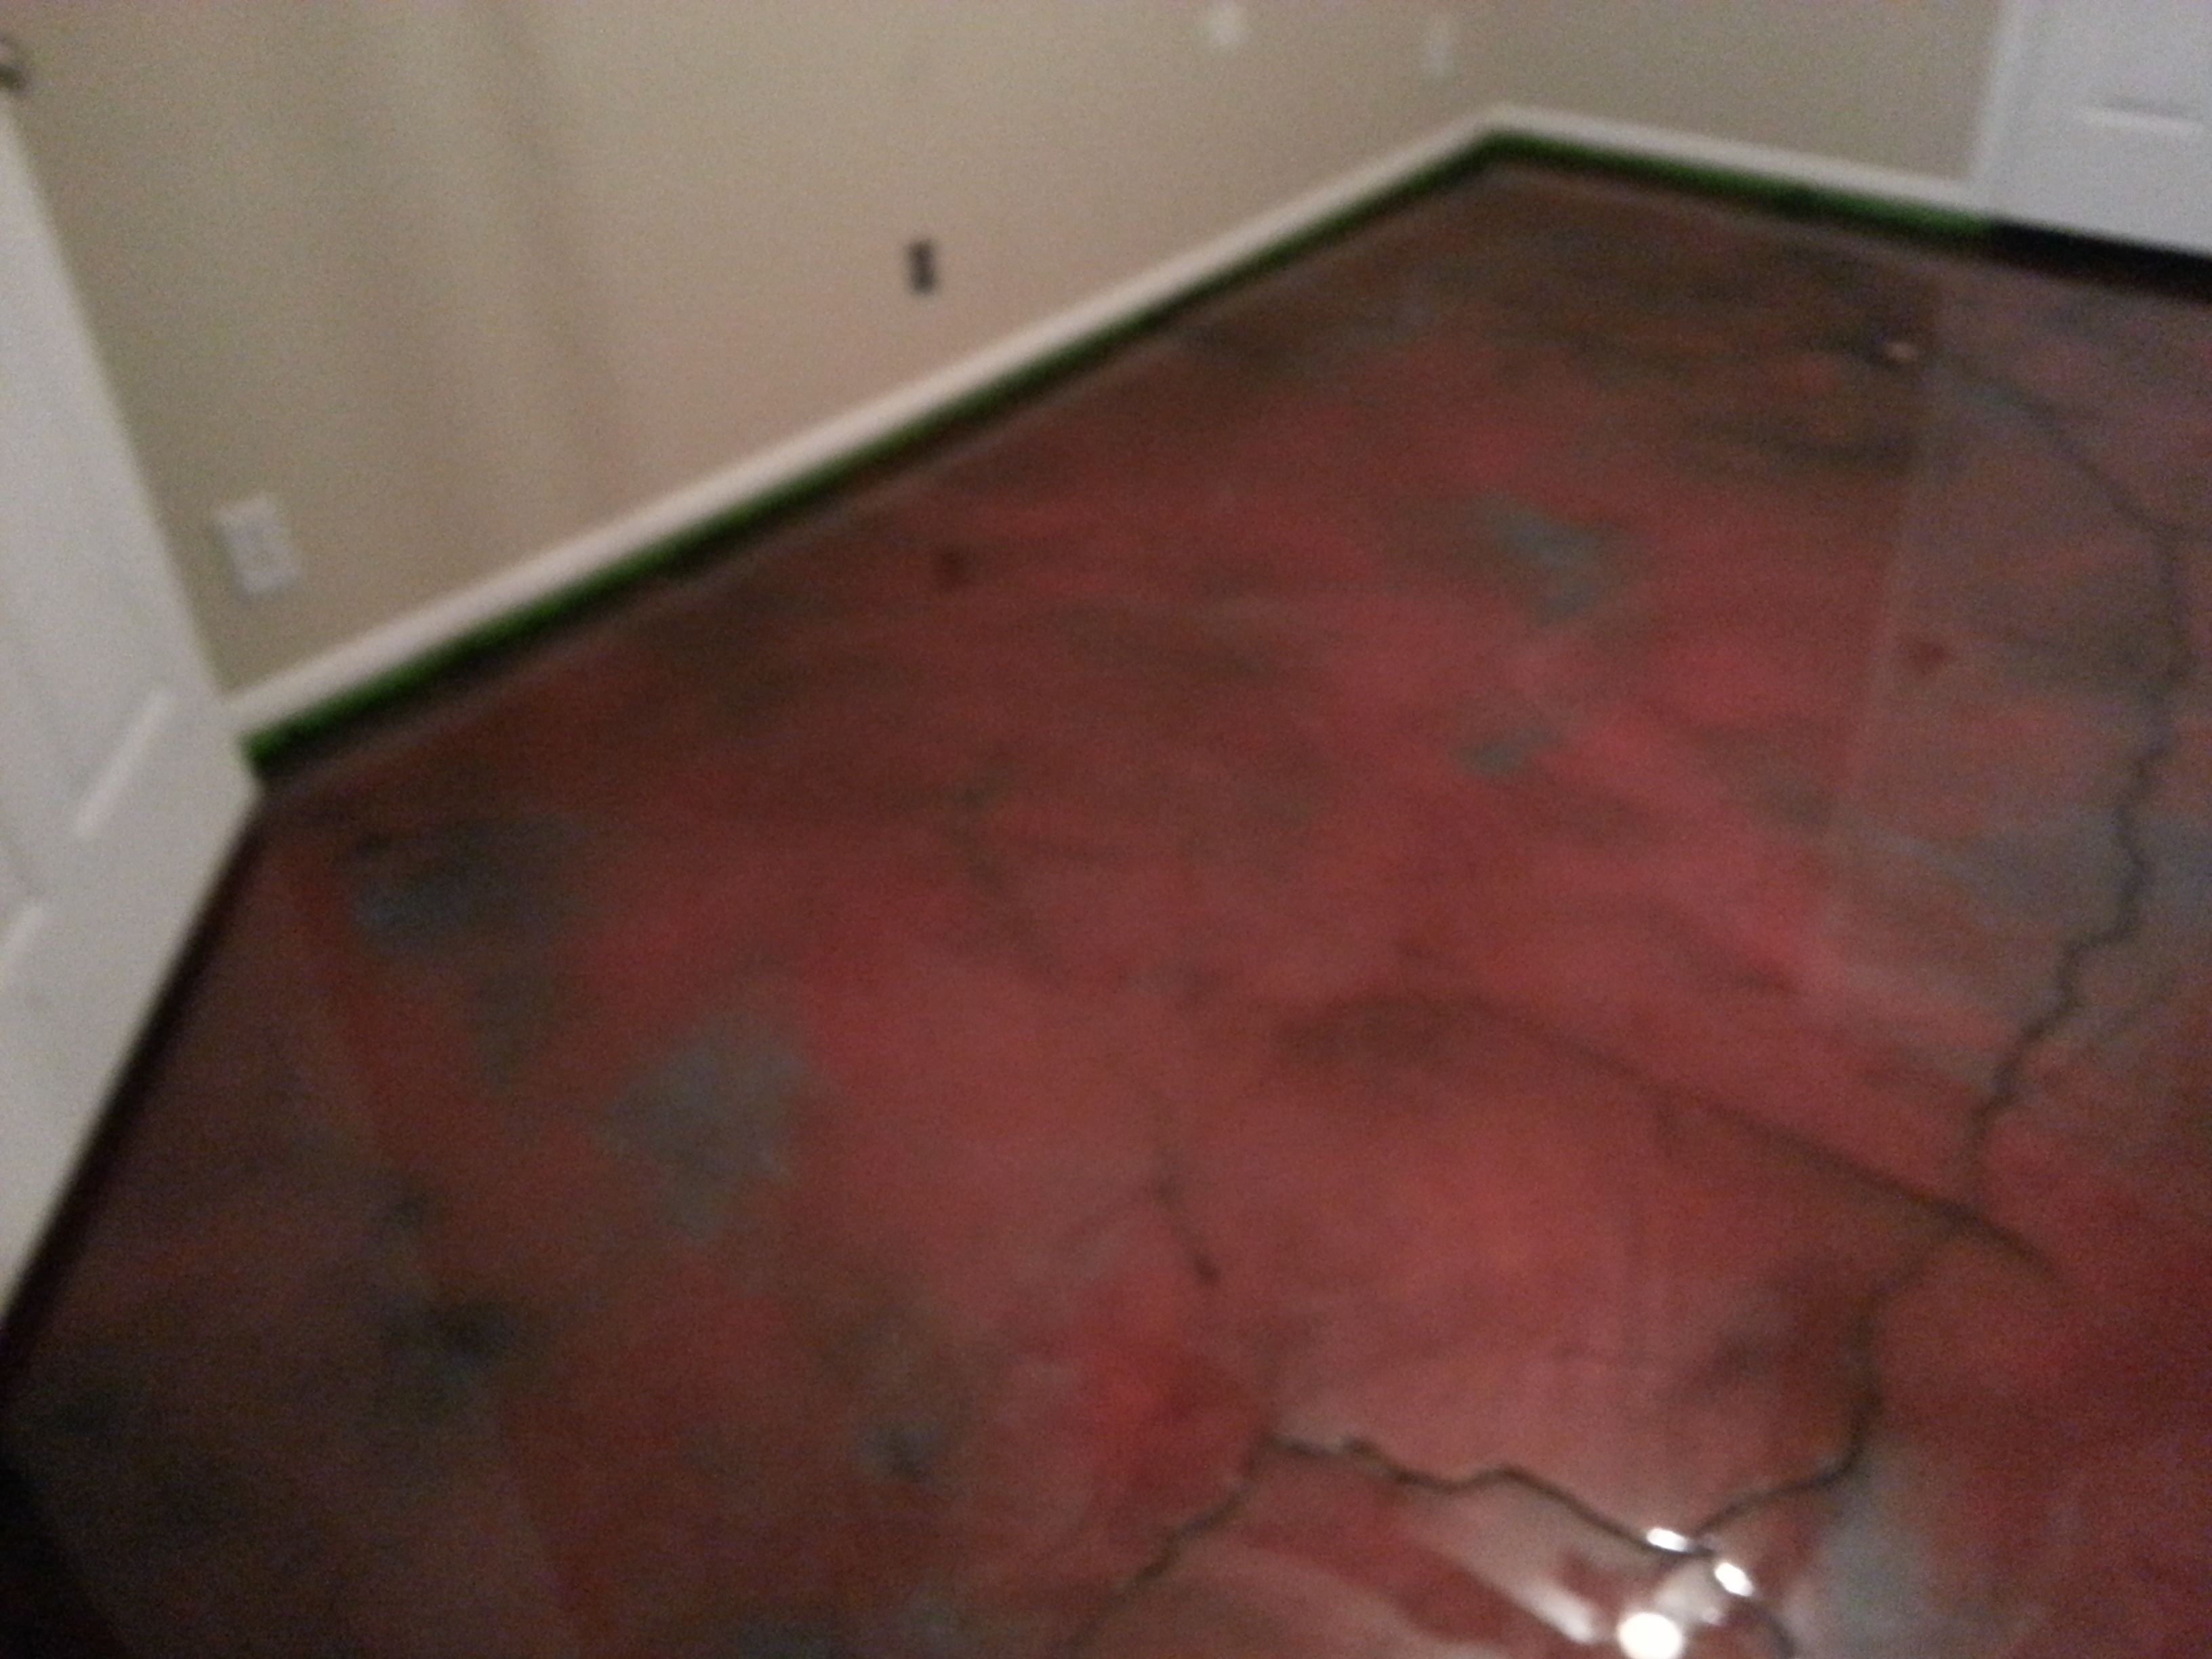 Black epoxy flooring Dark Brown Epoxy Floor Red Black With Cracked Effect Next Luxury Epoxy Floor Red Black With Cracked Effect Epoxy Overlay Concrete